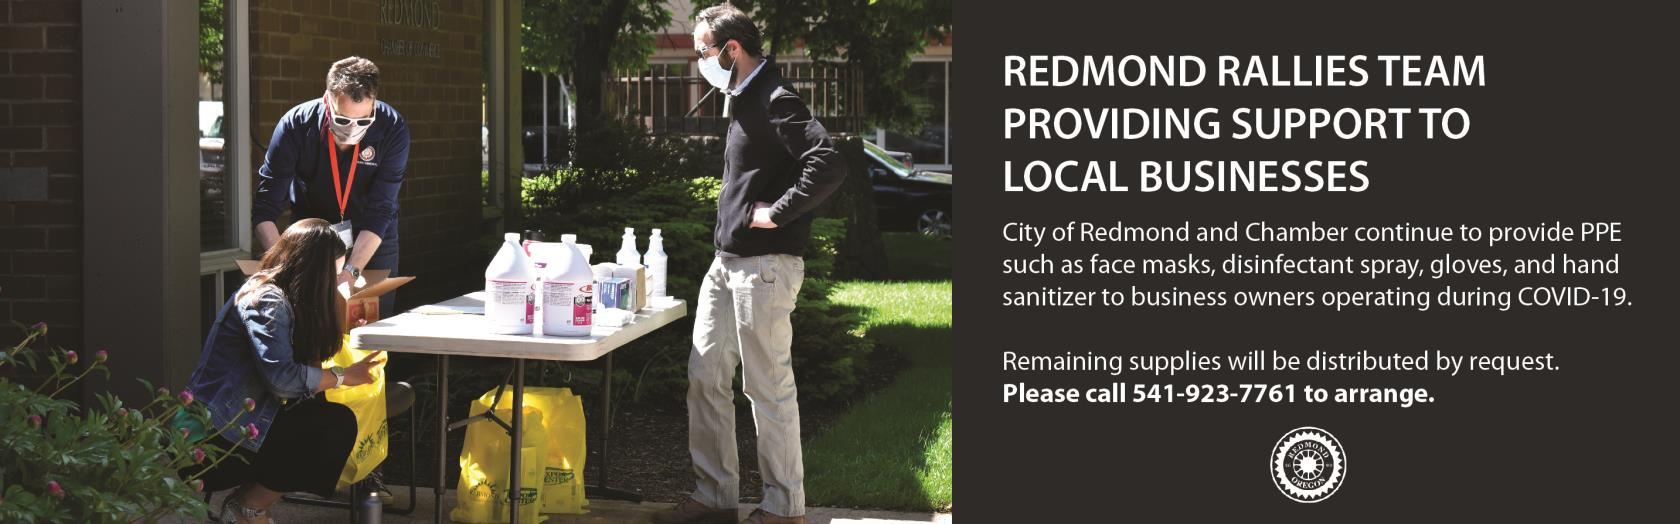 Redmond Rallies Team Providing support to local businesses